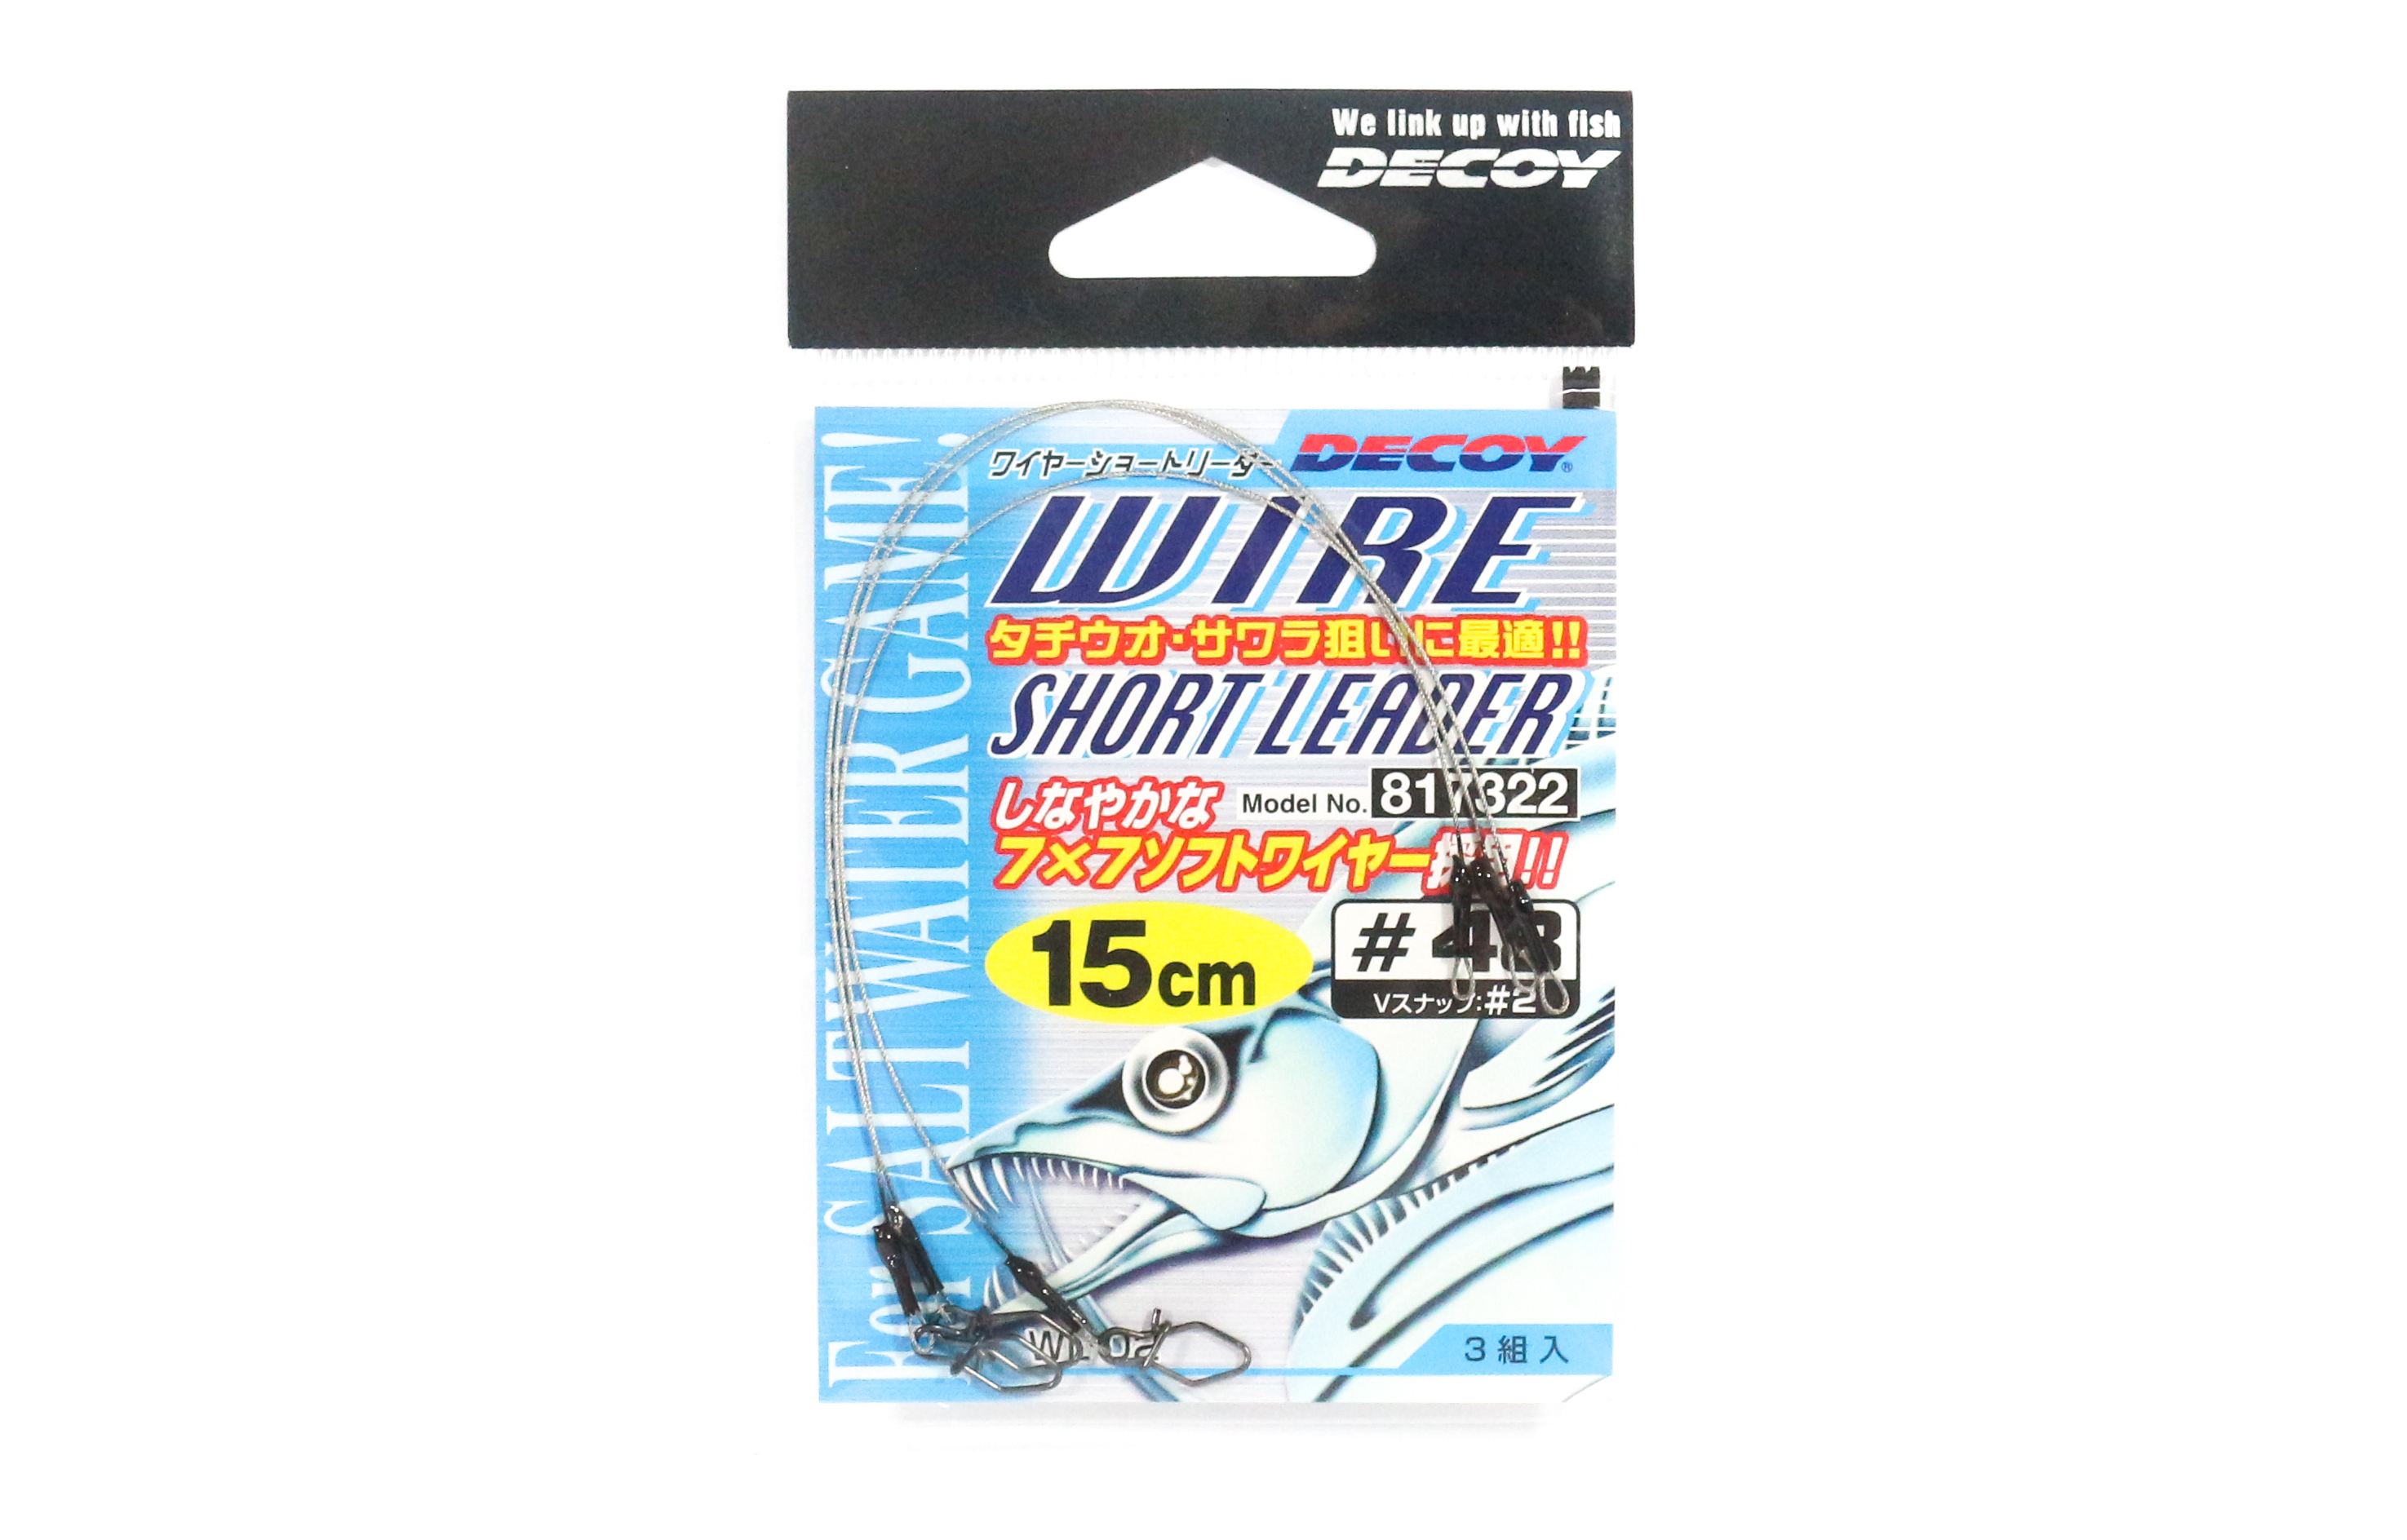 Decoy WL-02 48-15 cm Wire Short Leader Size 2 Snap (7322)